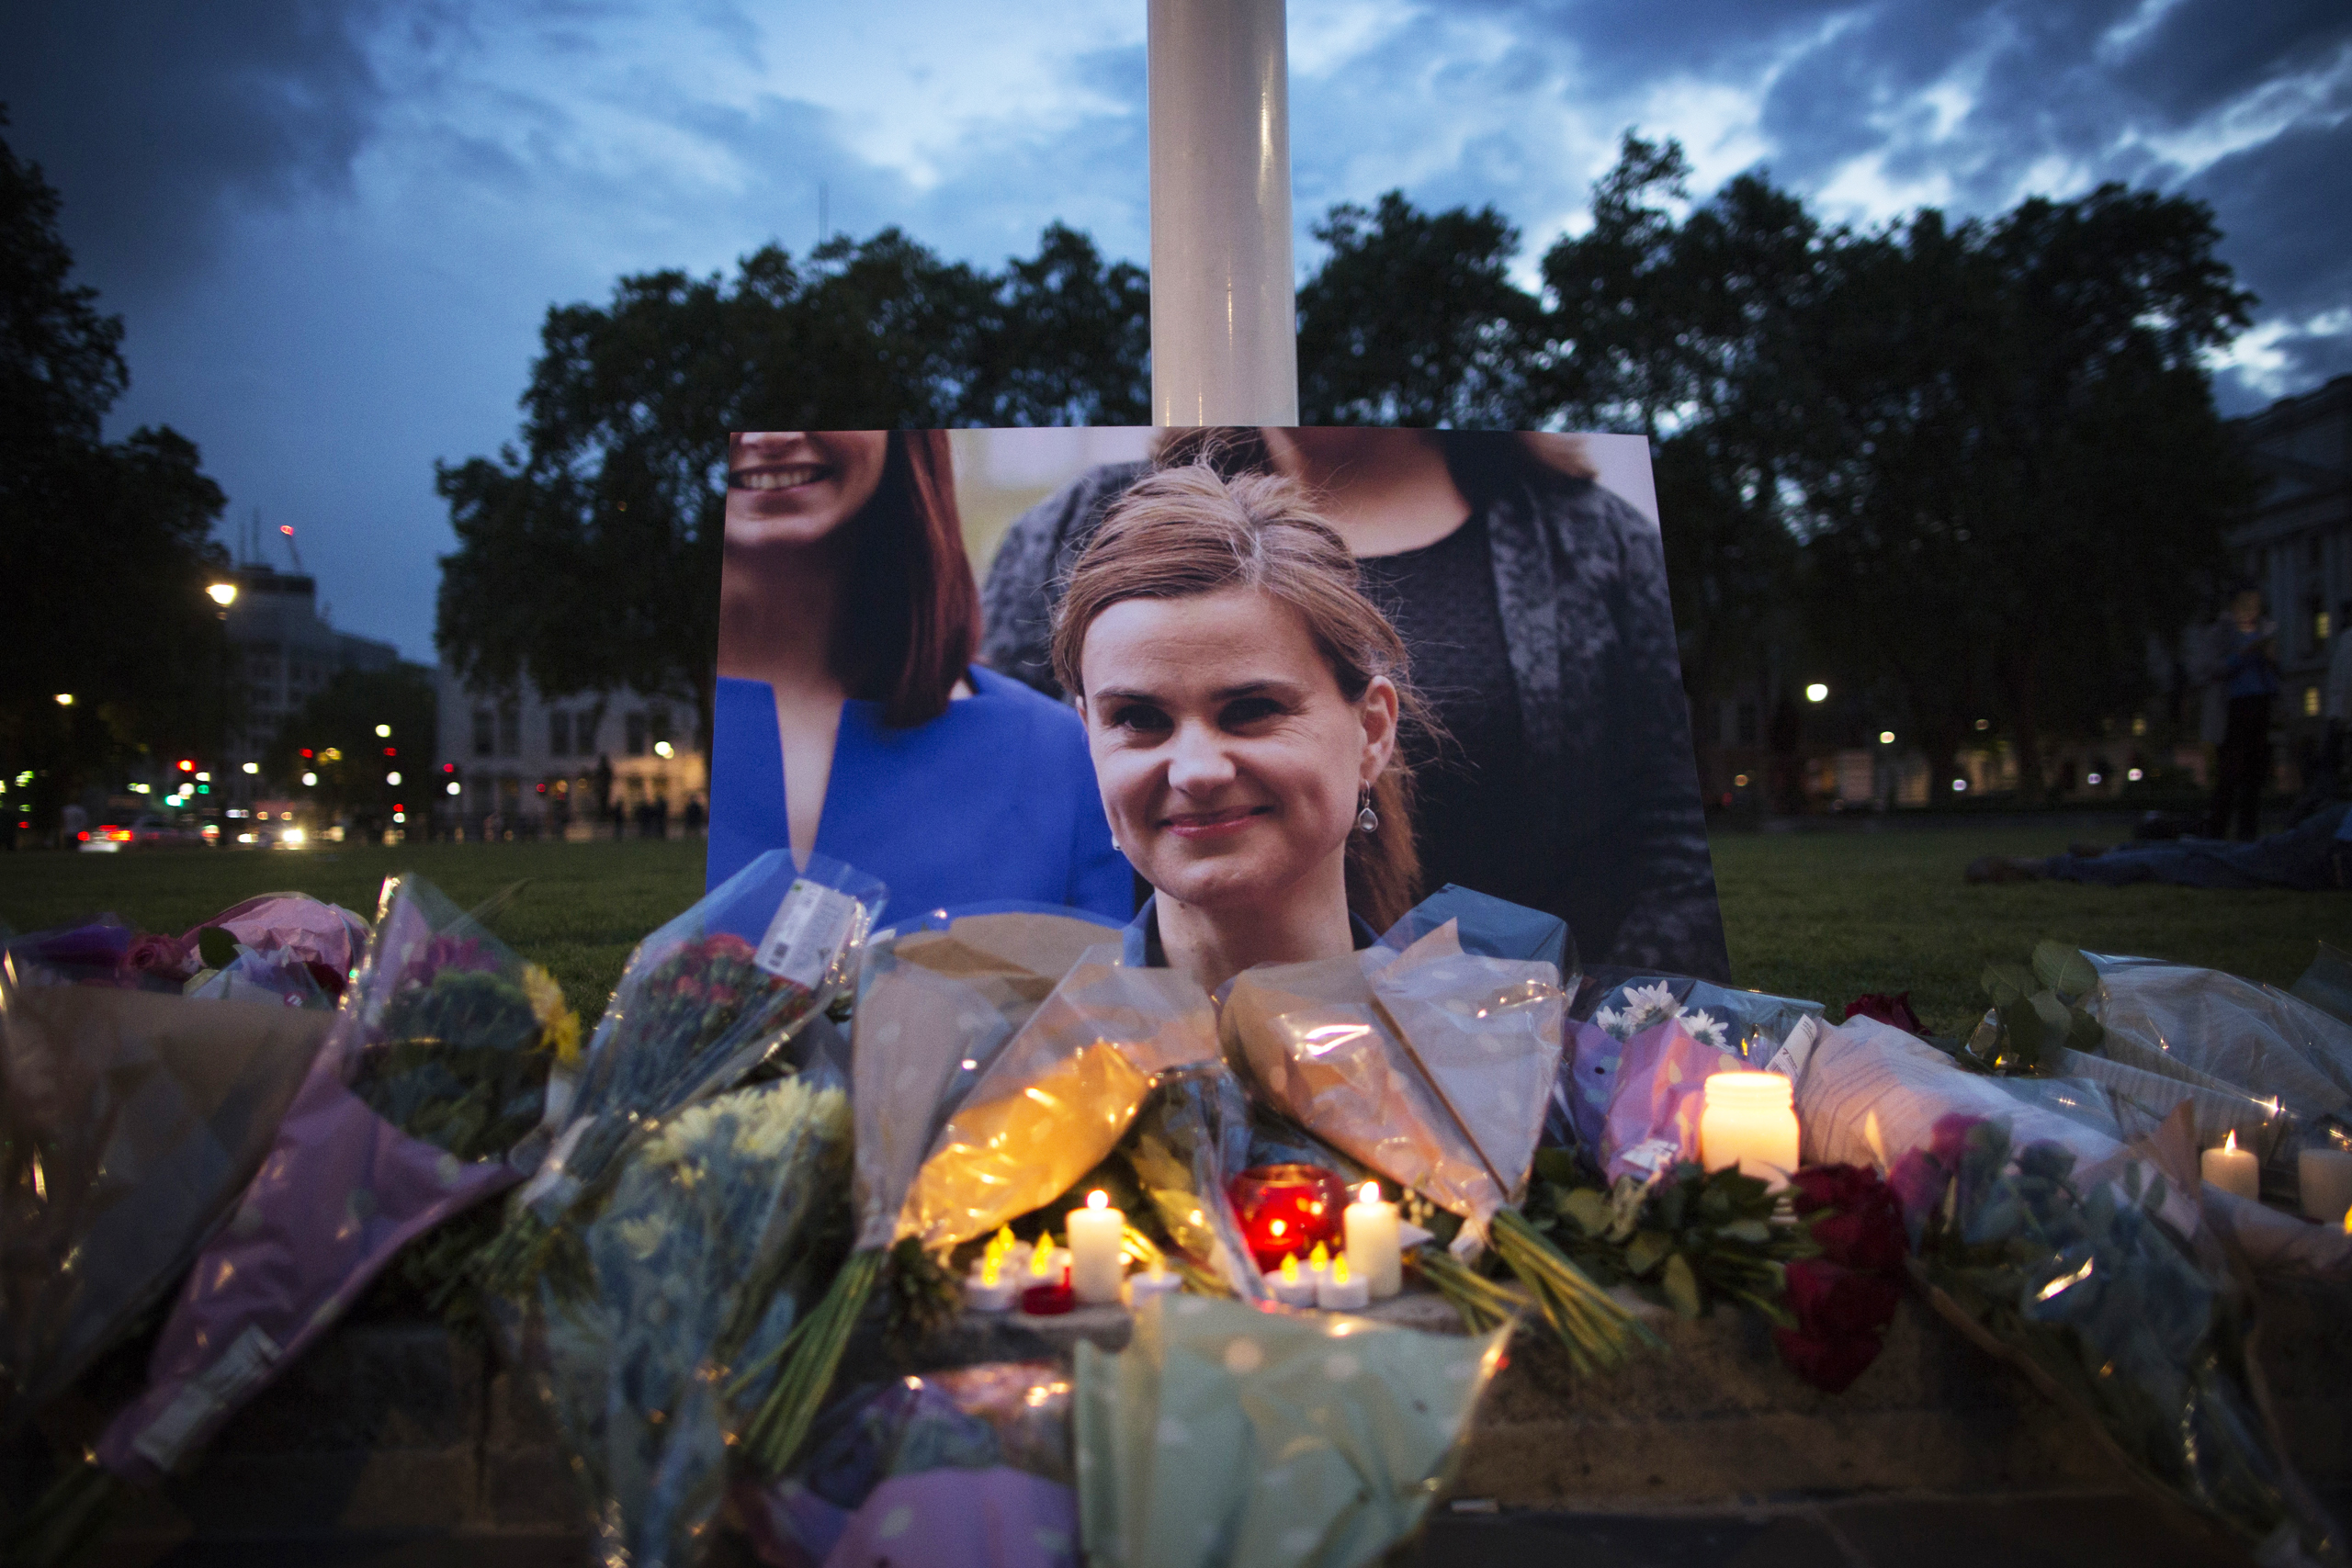 Flowers surround a picture of Jo Cox during a vigil in Parliament Square on June 16, 2016. The trial of the man suspected of killing Cox, Thomas Mair, started this week.